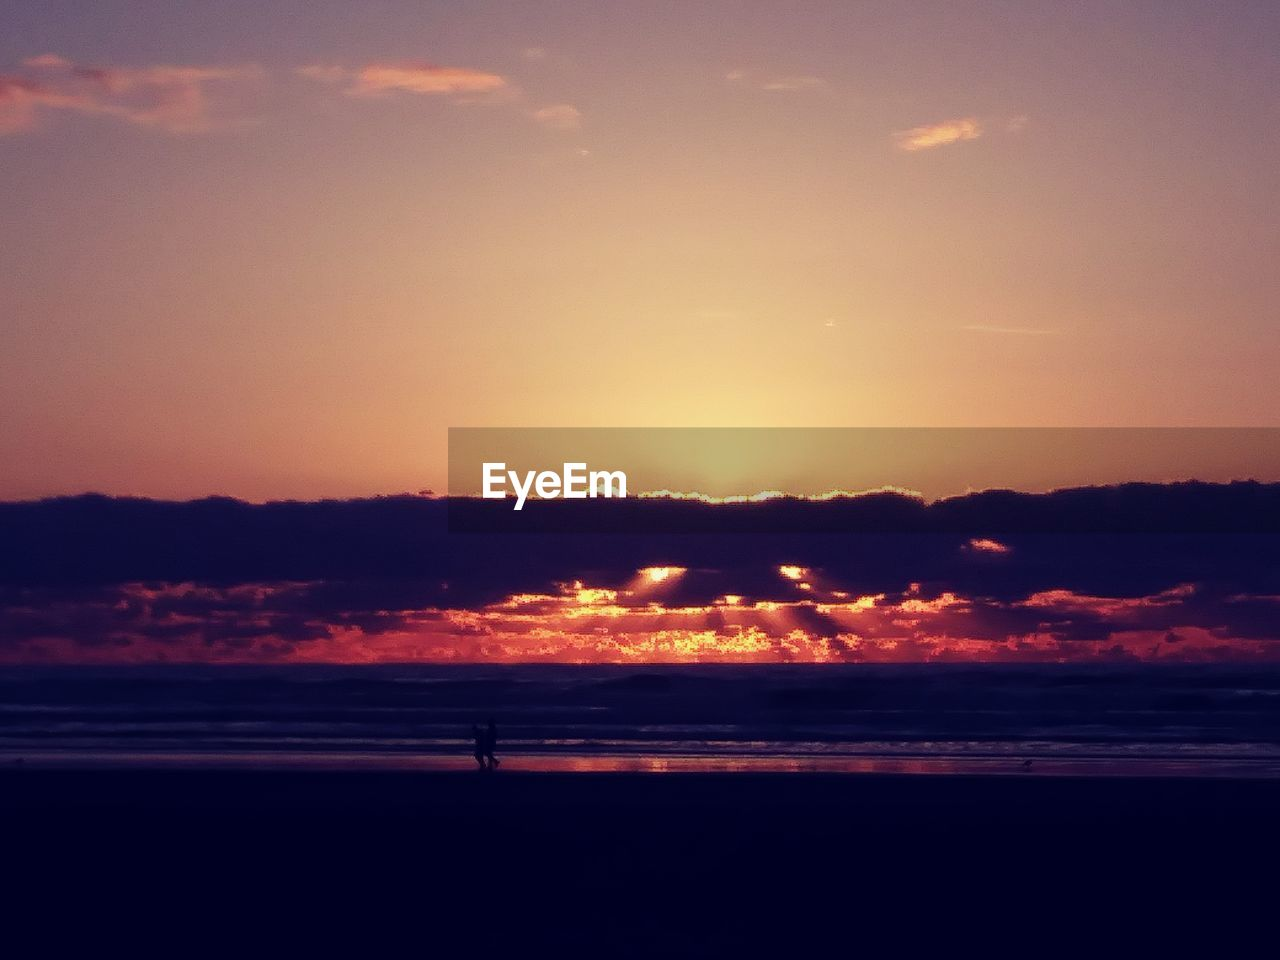 sunset, silhouette, nature, beauty in nature, scenics, orange color, tranquility, tranquil scene, sky, beach, outdoors, sea, no people, landscape, water, tree